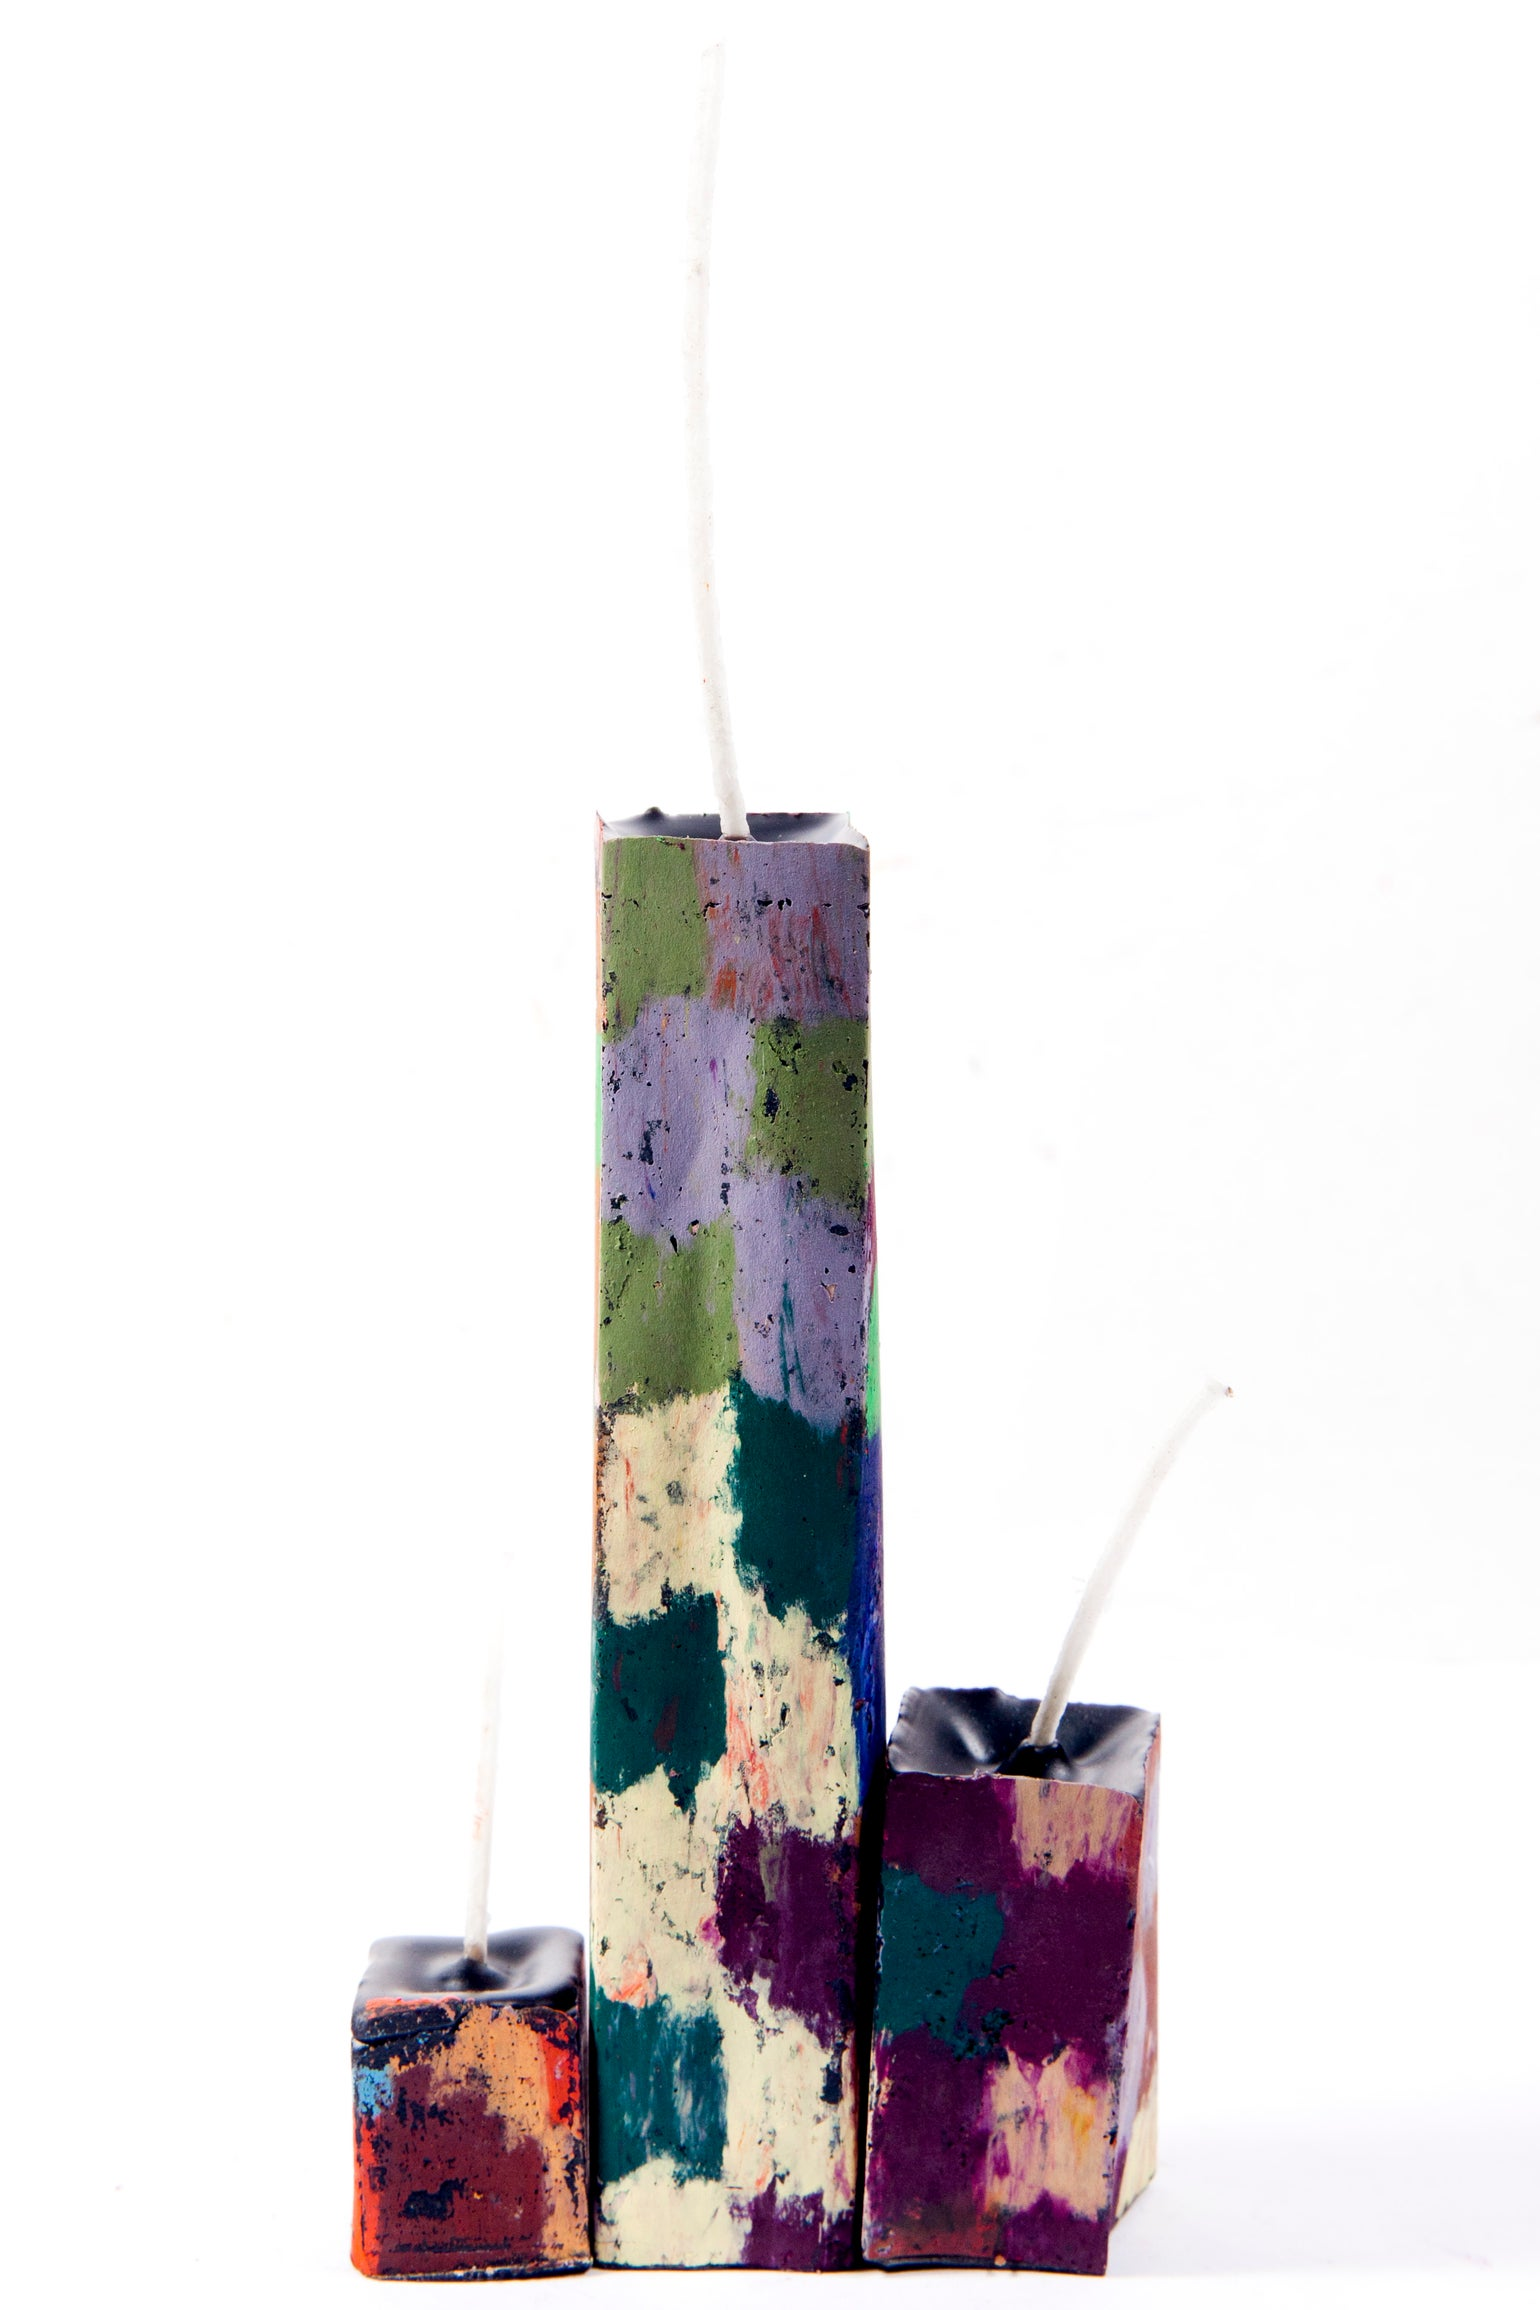 Image of Tower family in aubergine, baby blue, orange, emerald, brown, lilac, soft yellow, grey & reds